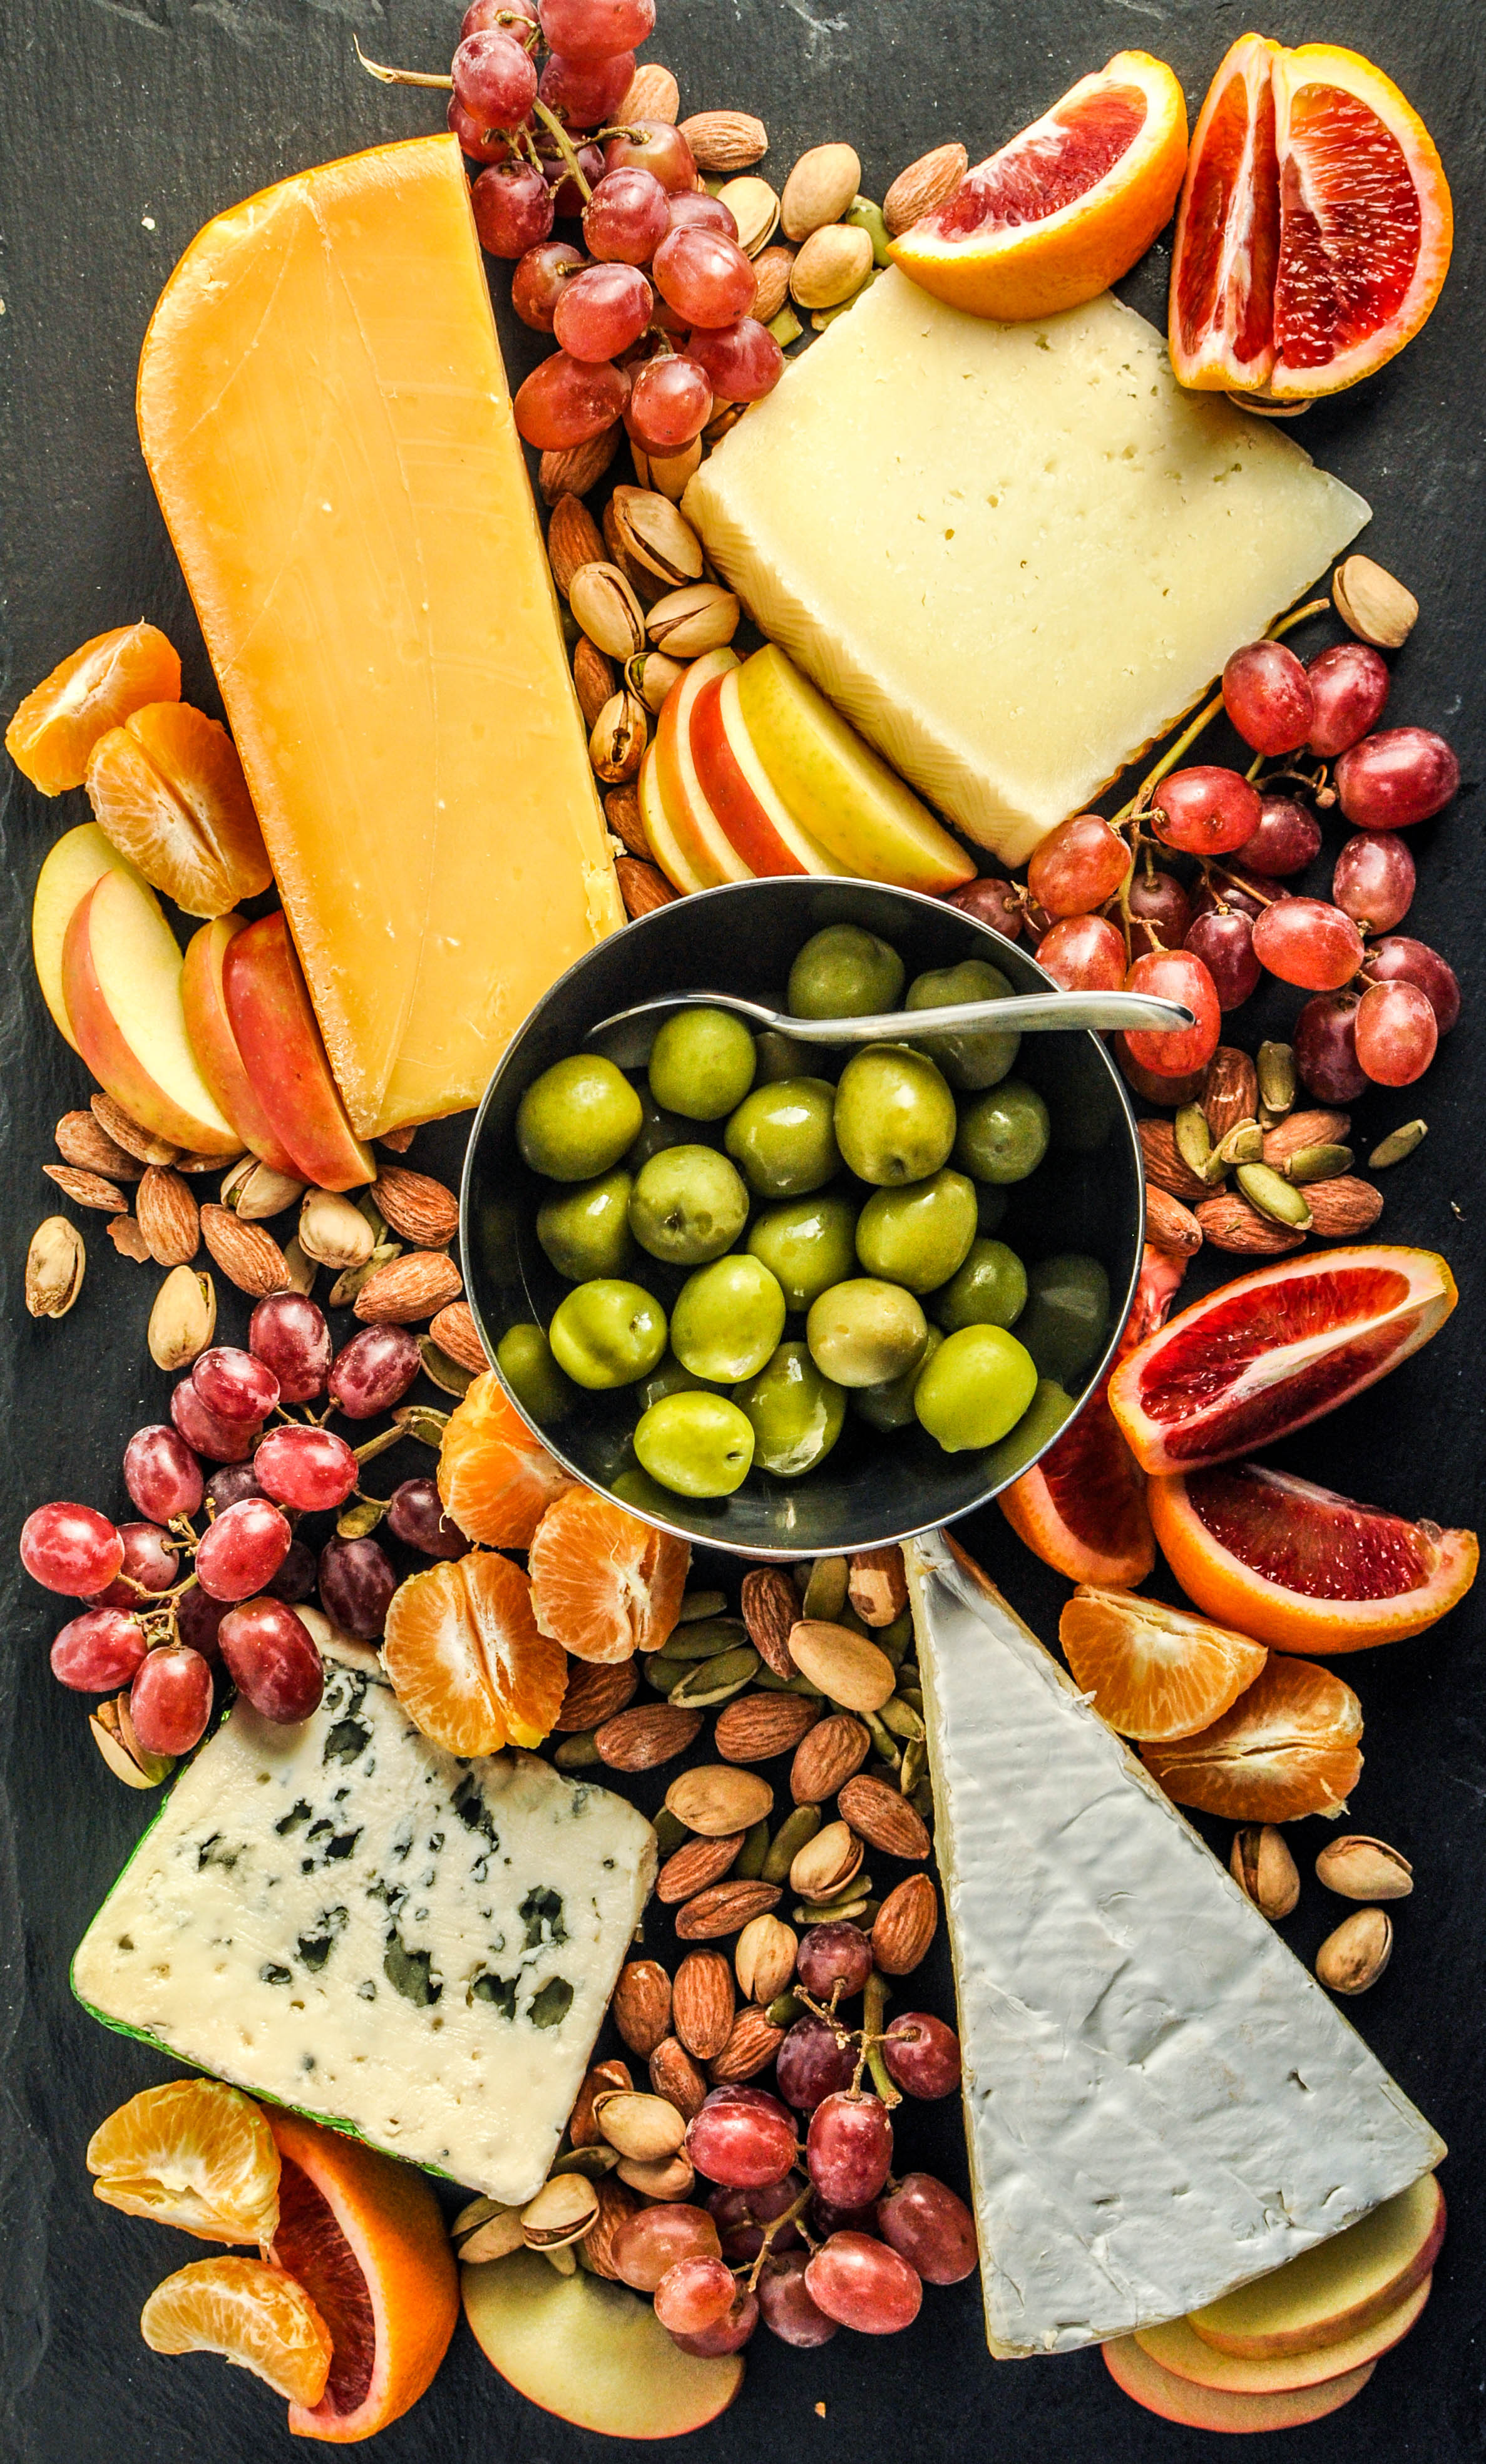 A Truly Fabulous Graze Board - Looking for a way to wow guests at a dinner party or having your own Friday night cocktails and canapés extravaganza? I humbly suggest this epic grazing board.